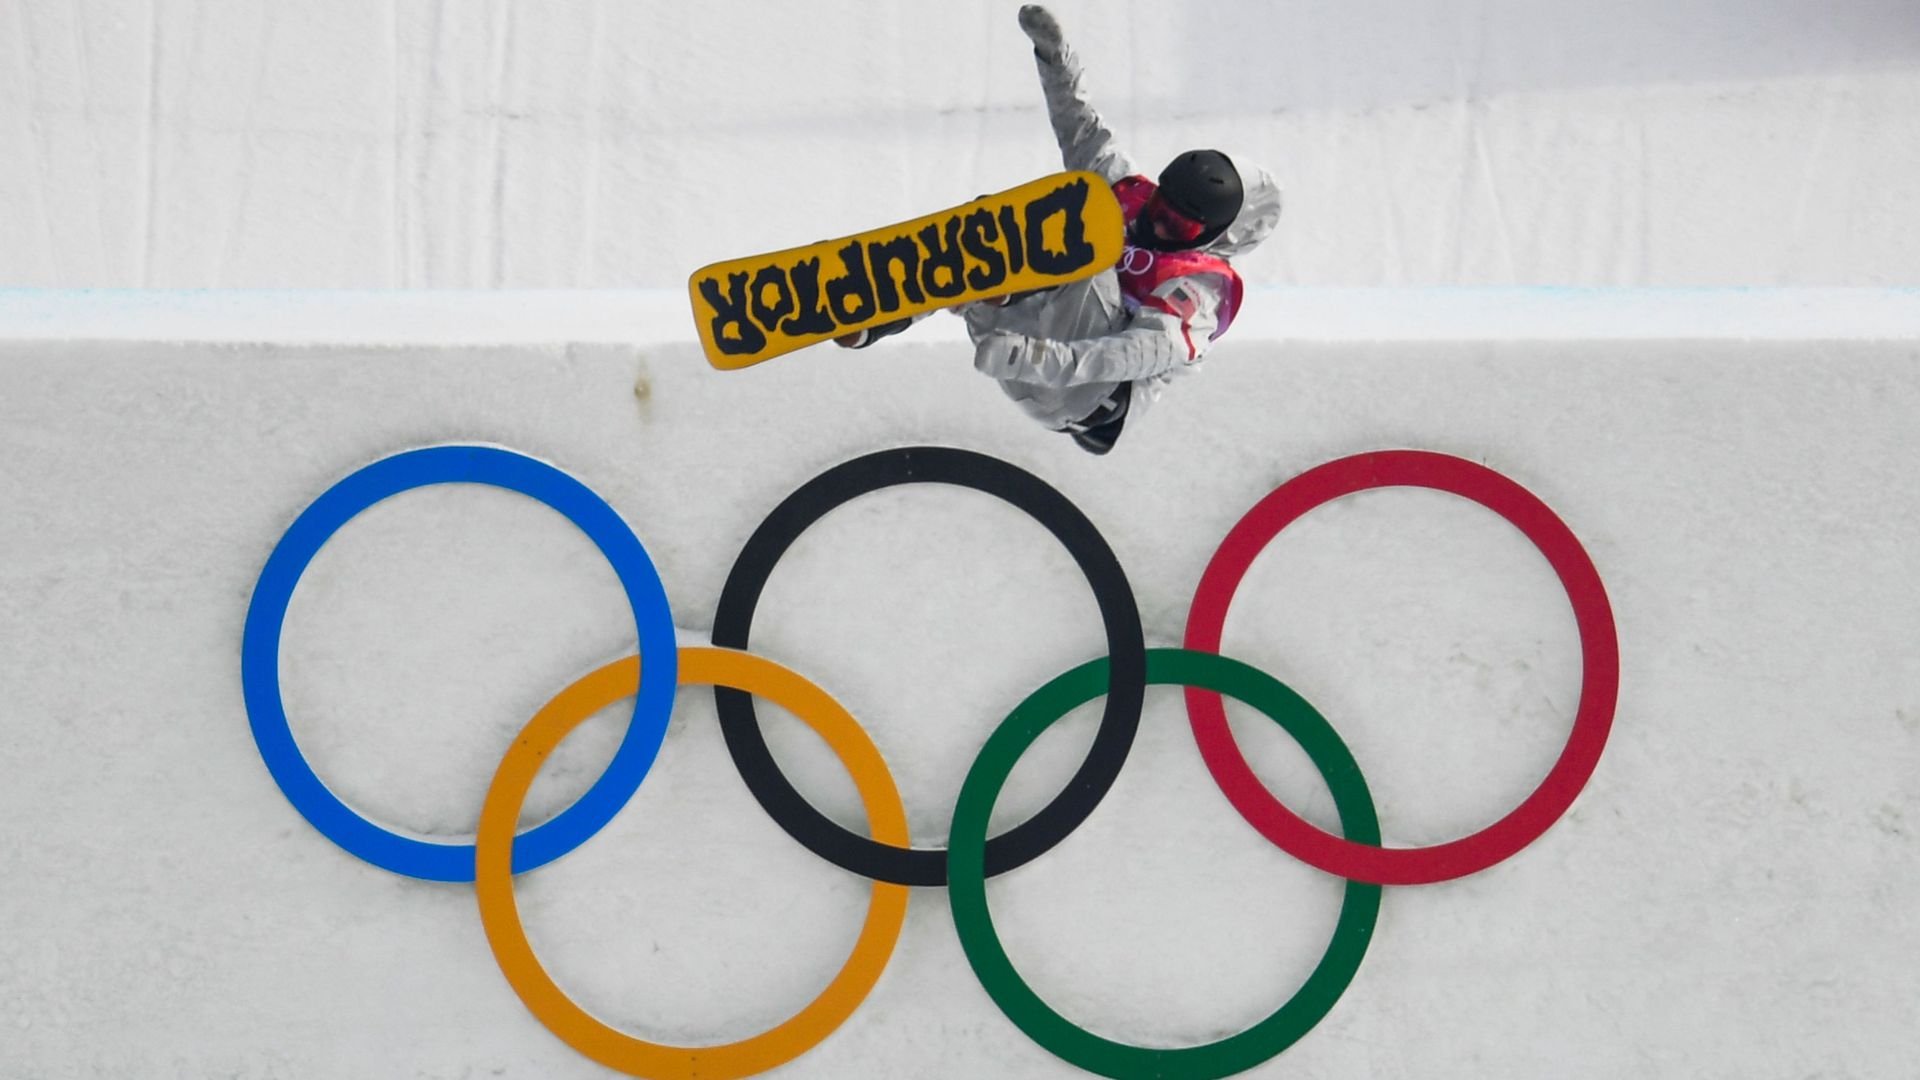 Report olympic destroyer malware a false flag operation axios us big air athelete kyle mack competes at the pyeongchang 2018 winter olympic games photo franck fifeafp via getty images malvernweather Choice Image